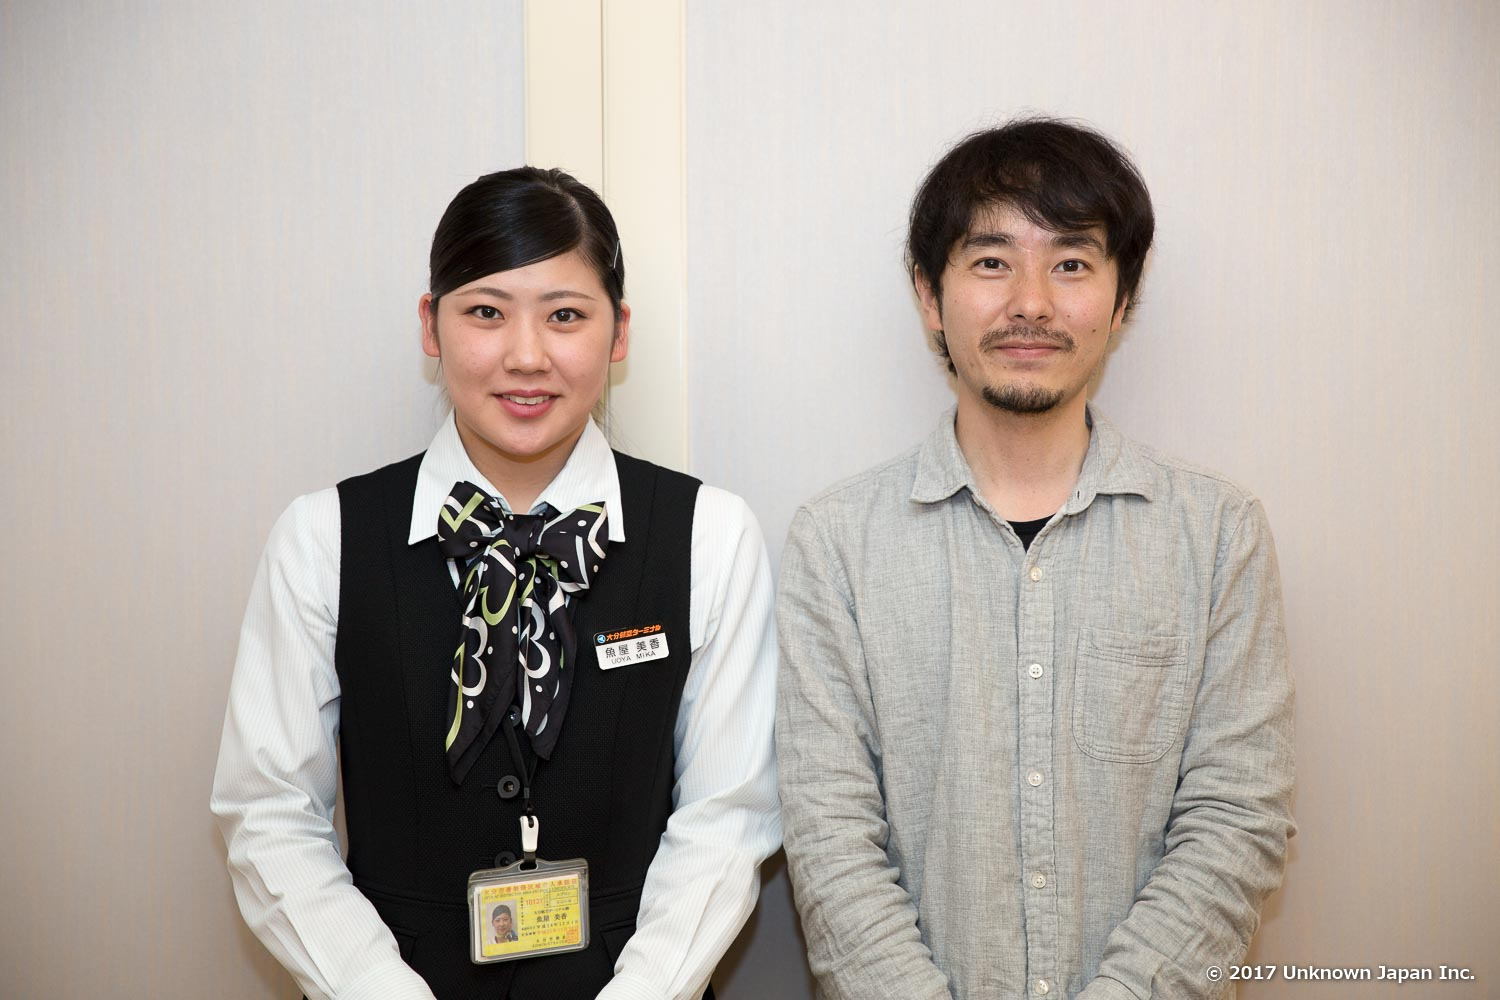 With one of the Oita Airport Staff  Mika Uoya